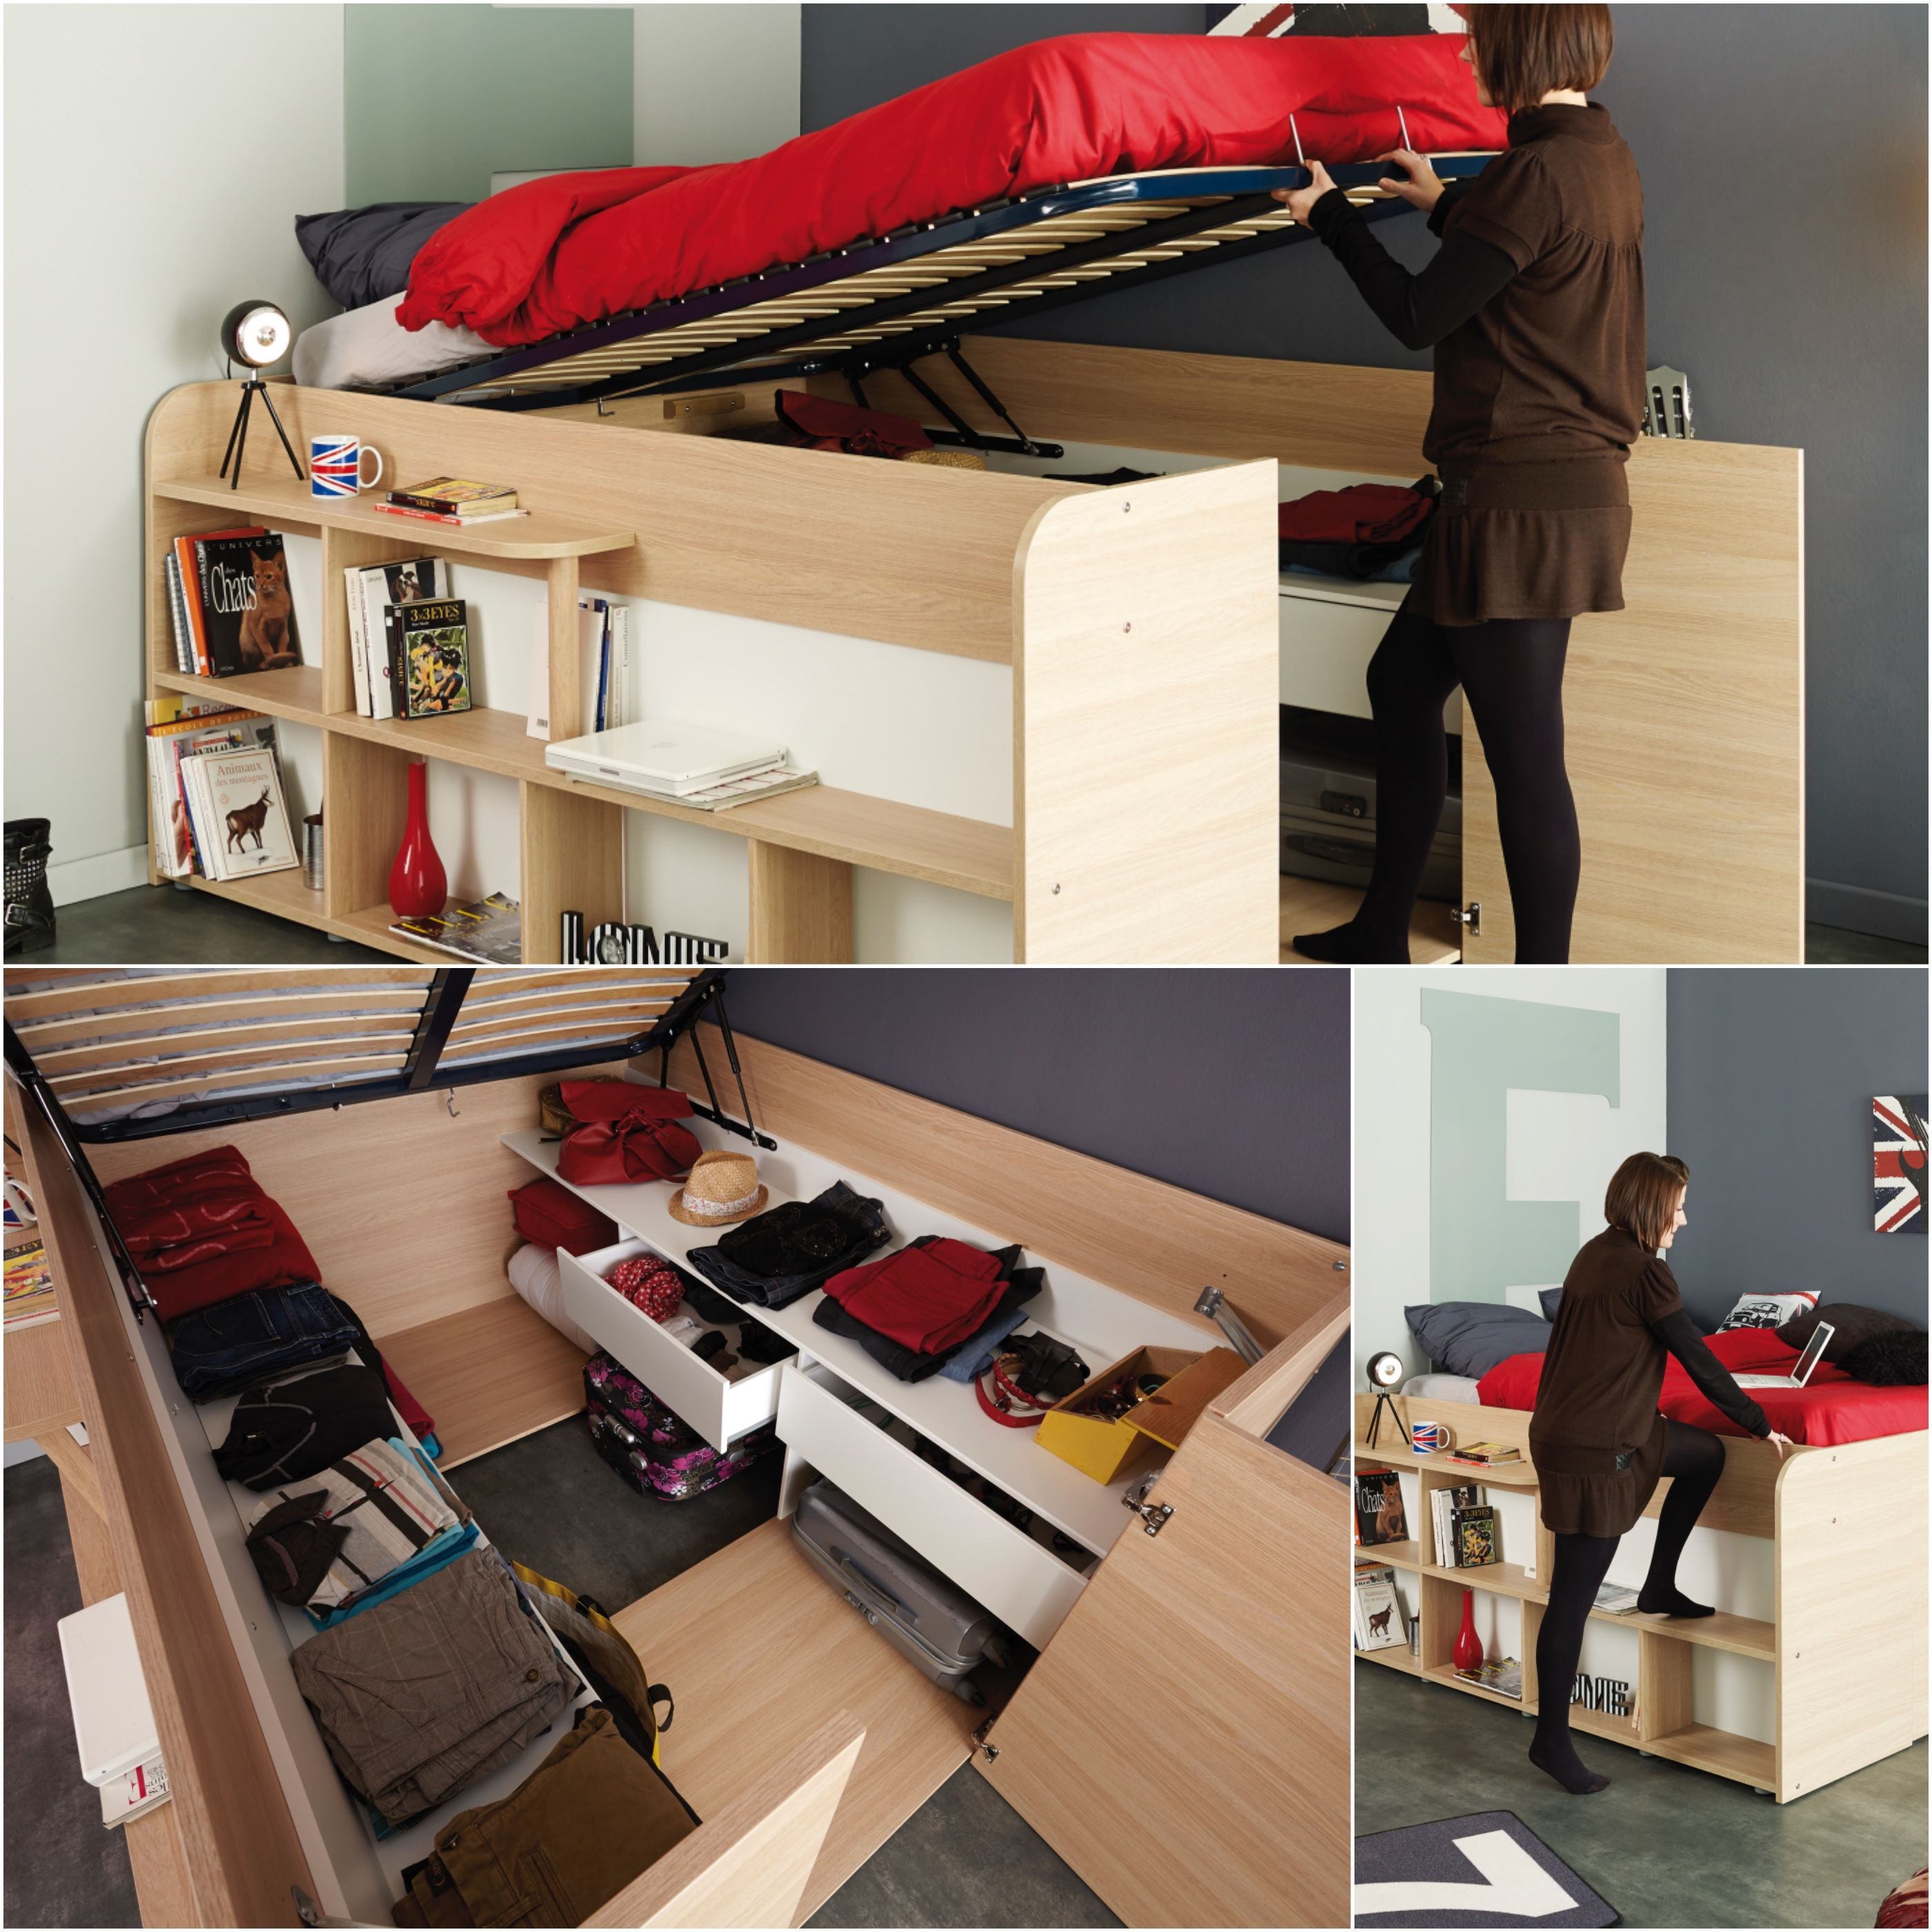 Space Up By Parisot Meubles Sapce Up Was Designed For Small Spaces A Combined Bed With Bedding For 2 Persons And A Real Dressing Under The Bed Created Hogar